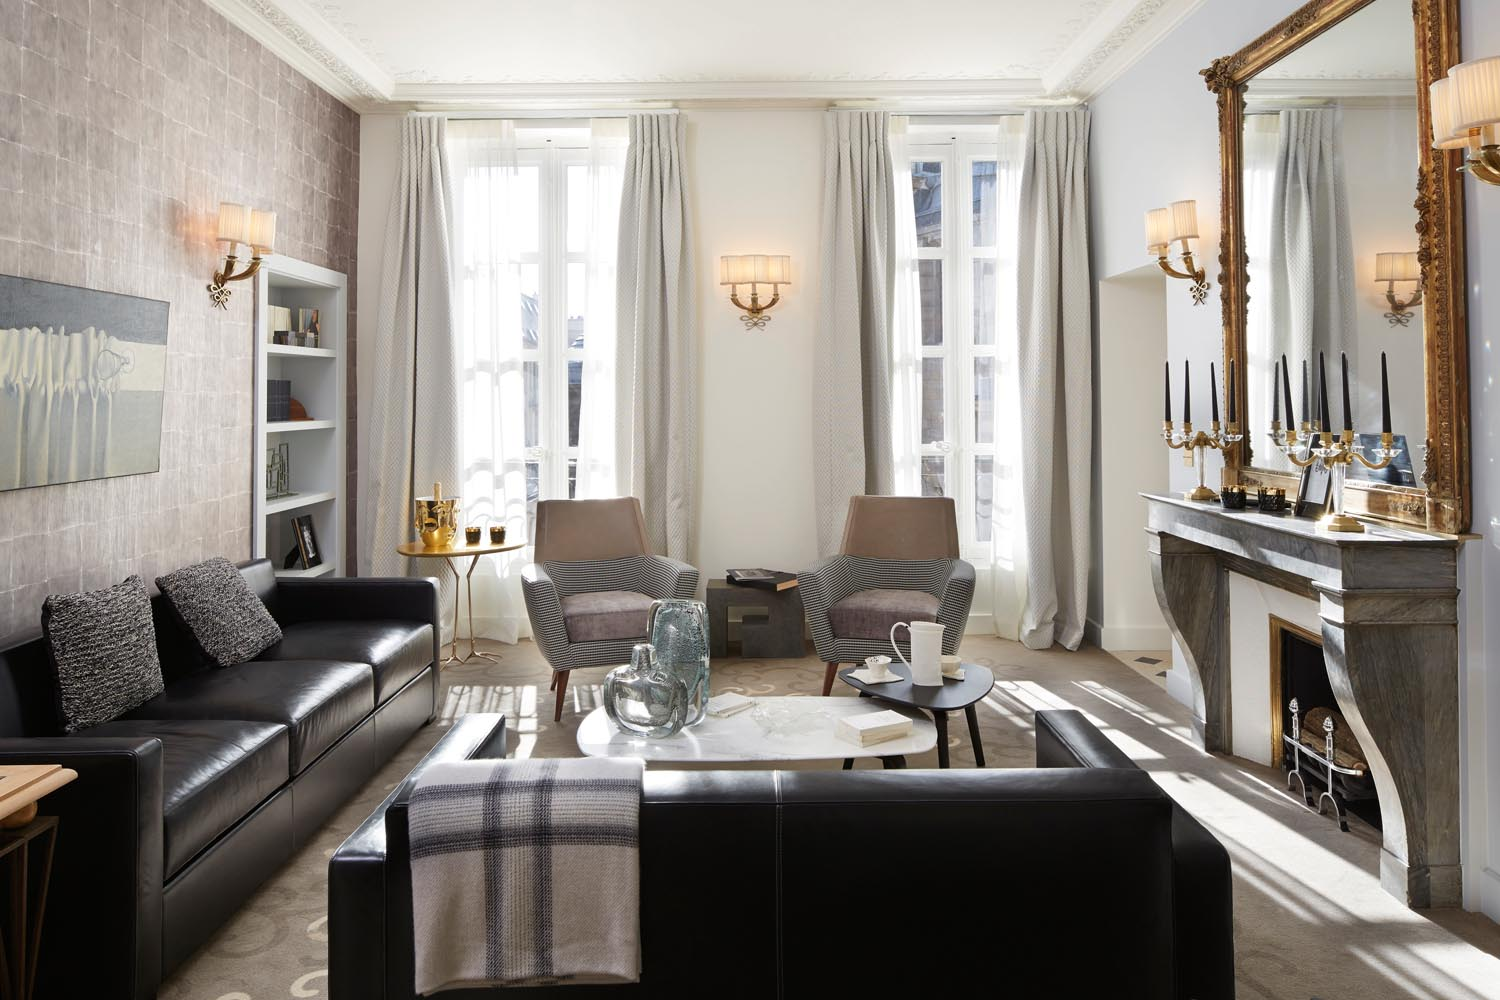 The combination of leather lounges and upholstered chairs ties luxe with contemporary pieces